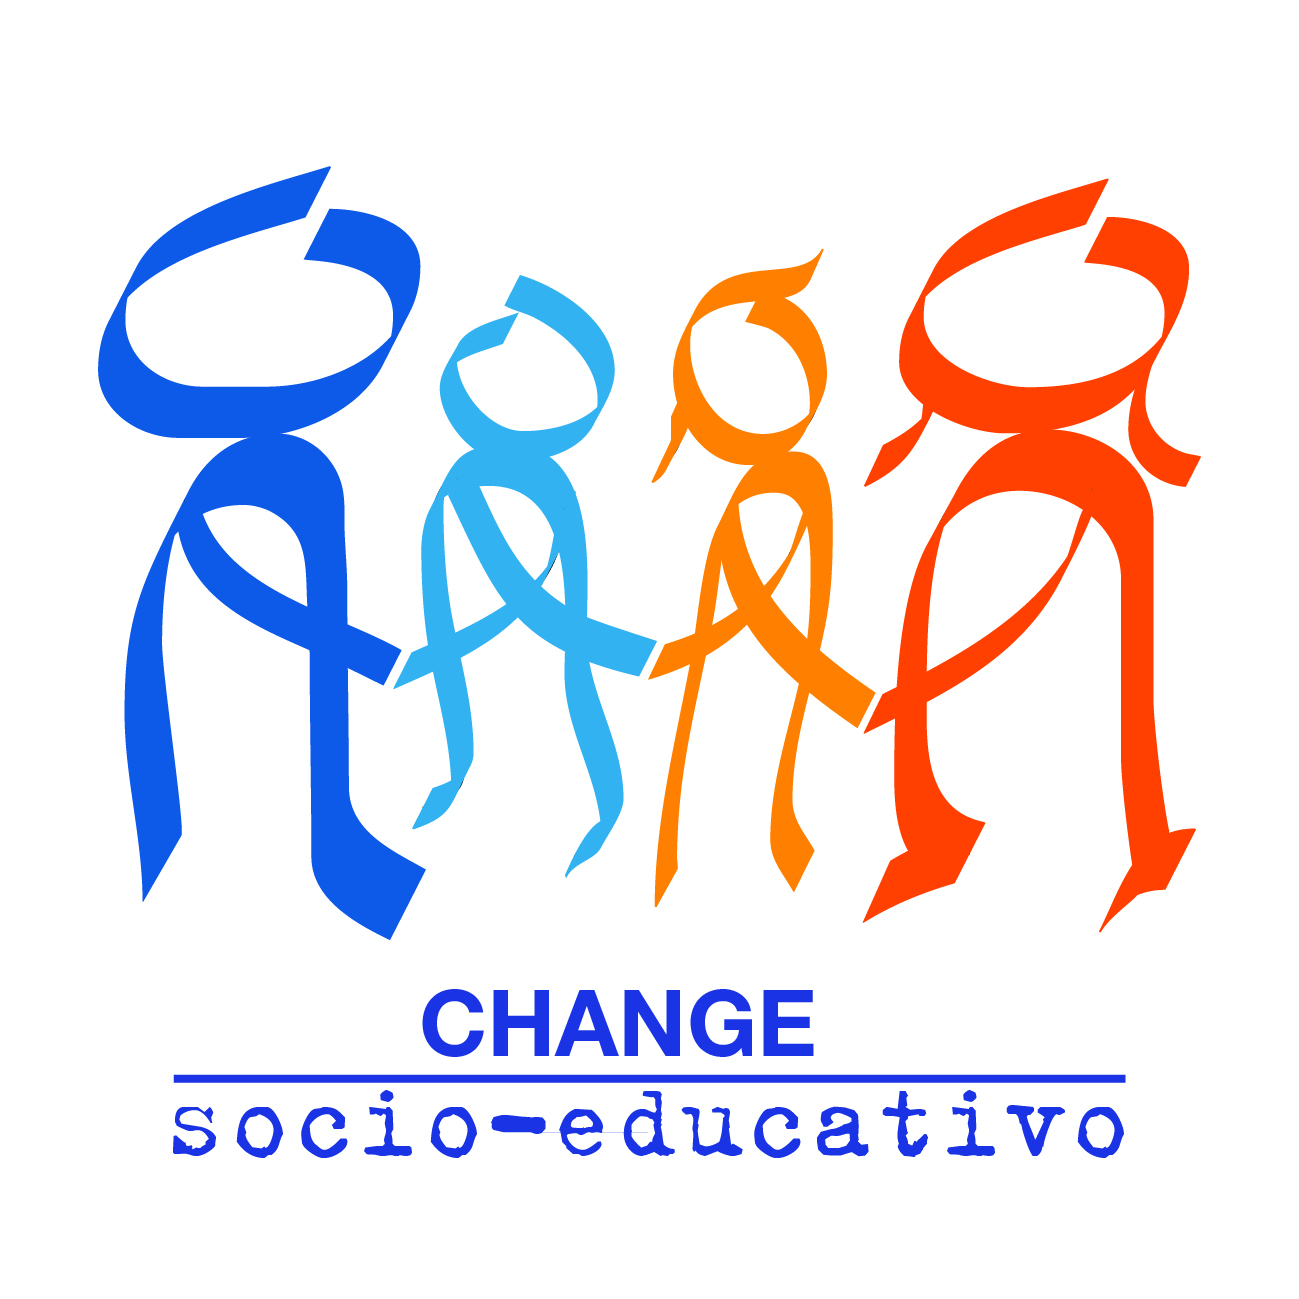 Change socio-educativo